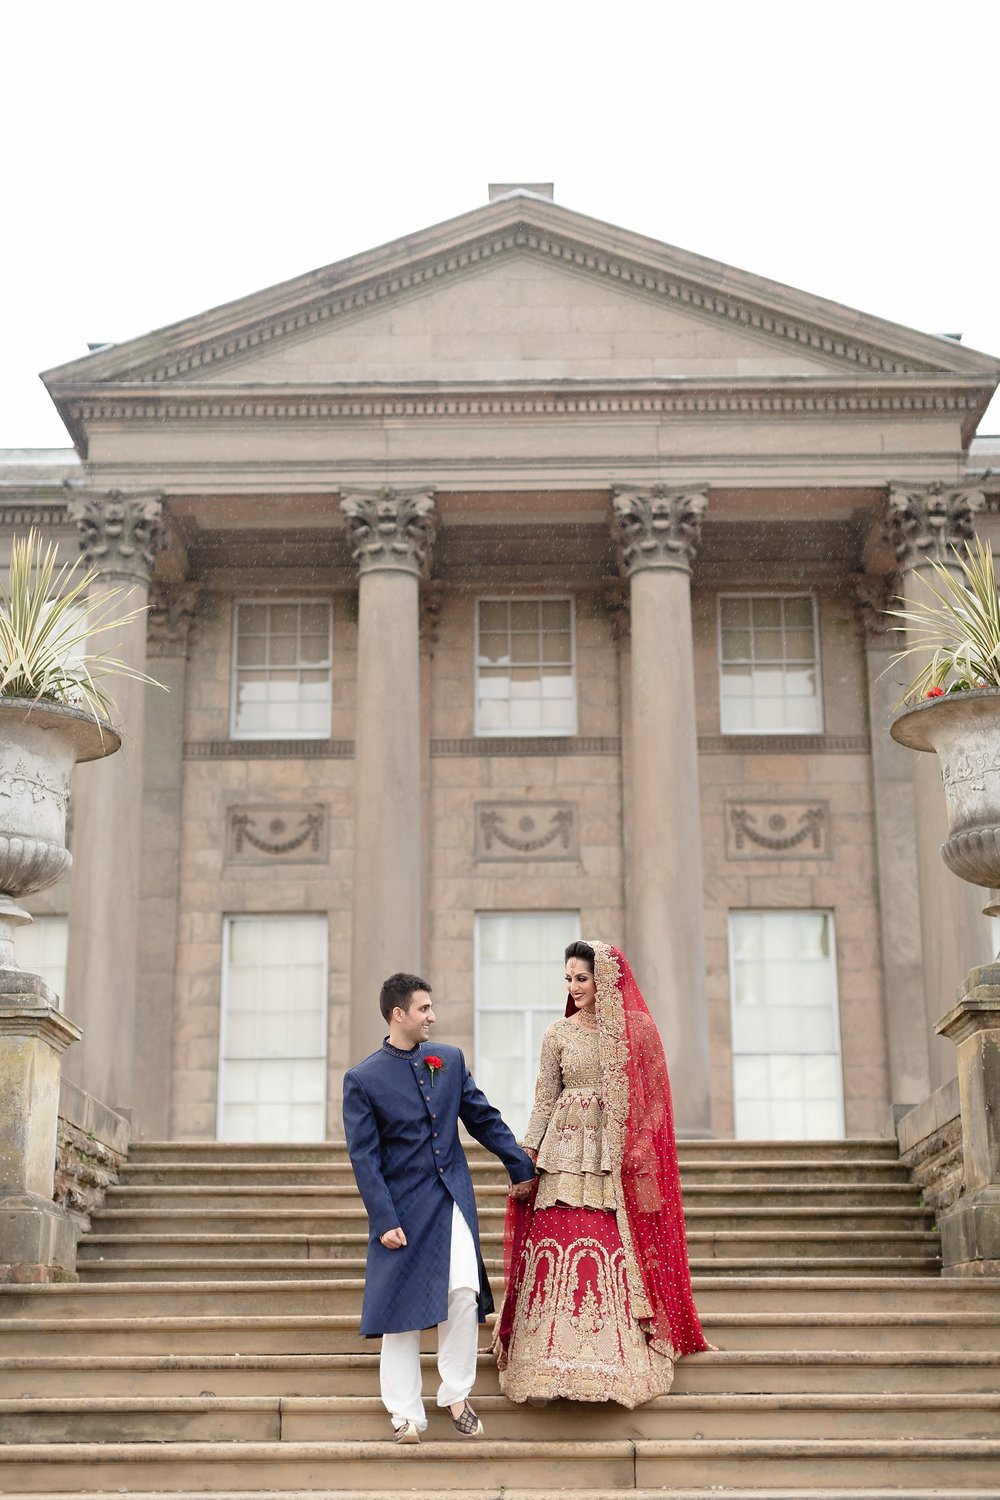 zehra female photographer tatton park wedding_0025.jpg